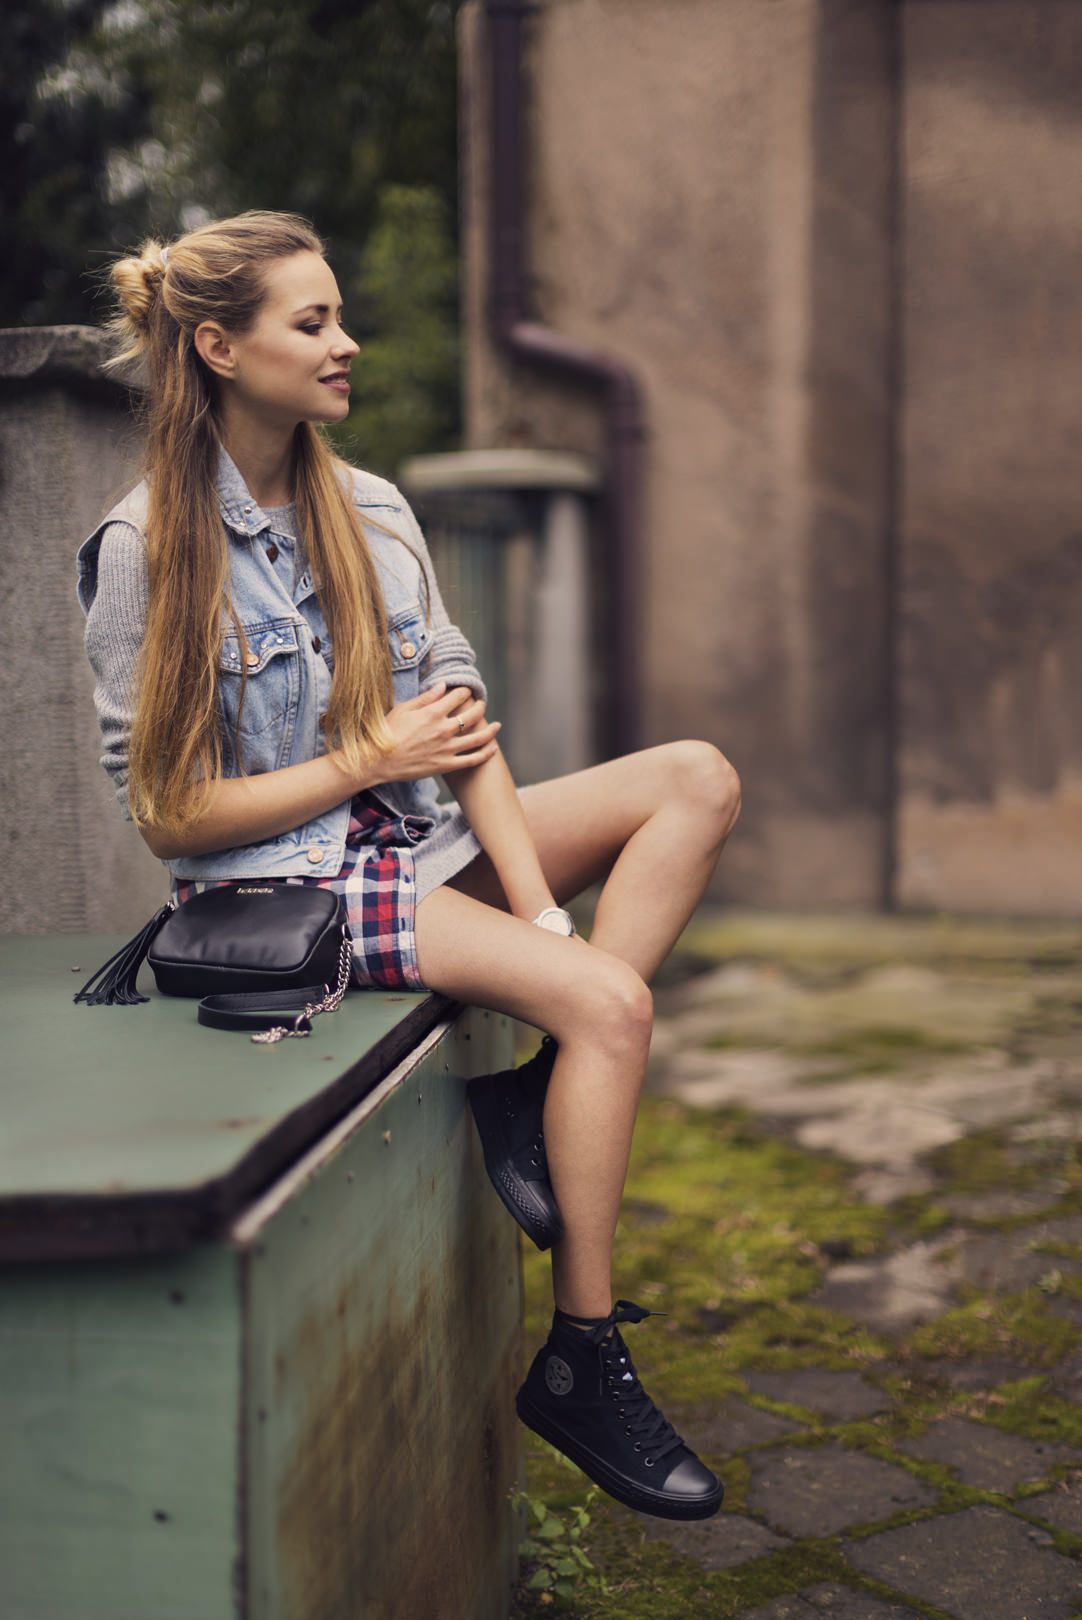 Juliette_in_Wonderland_grunge_02